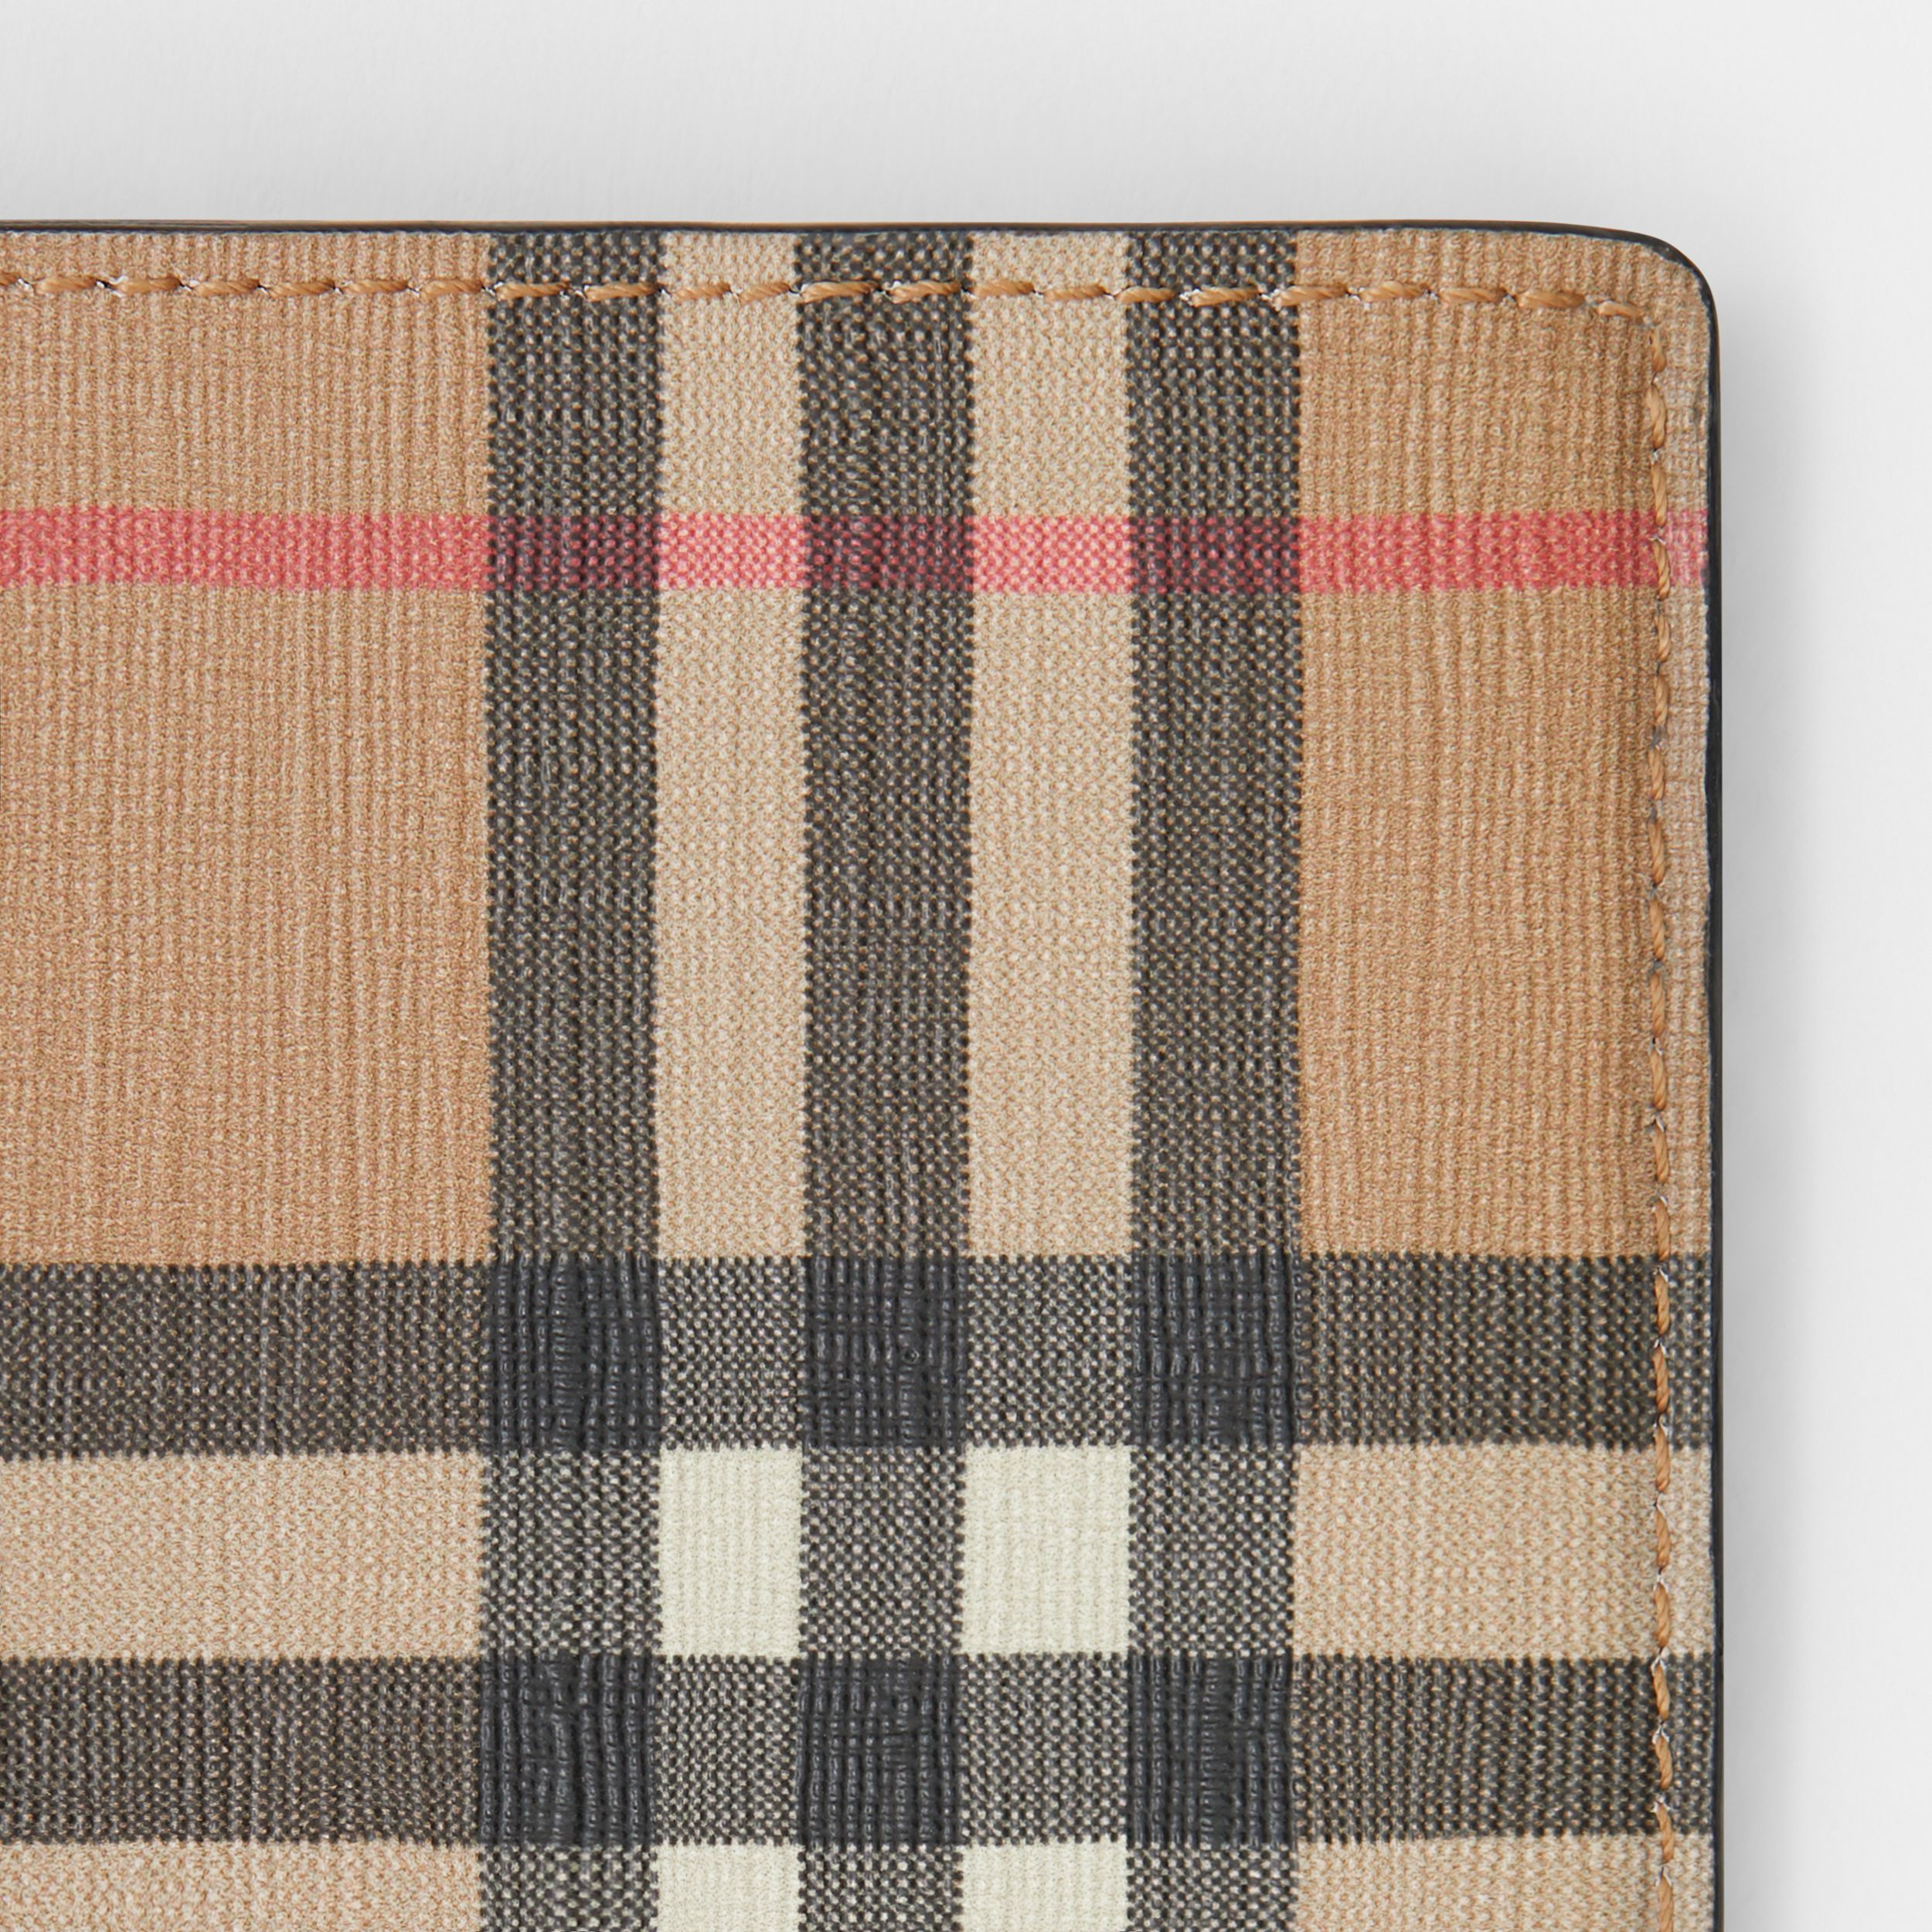 Vintage Check E-canvas International Bifold Wallet in Archive Beige - Men | Burberry - 2